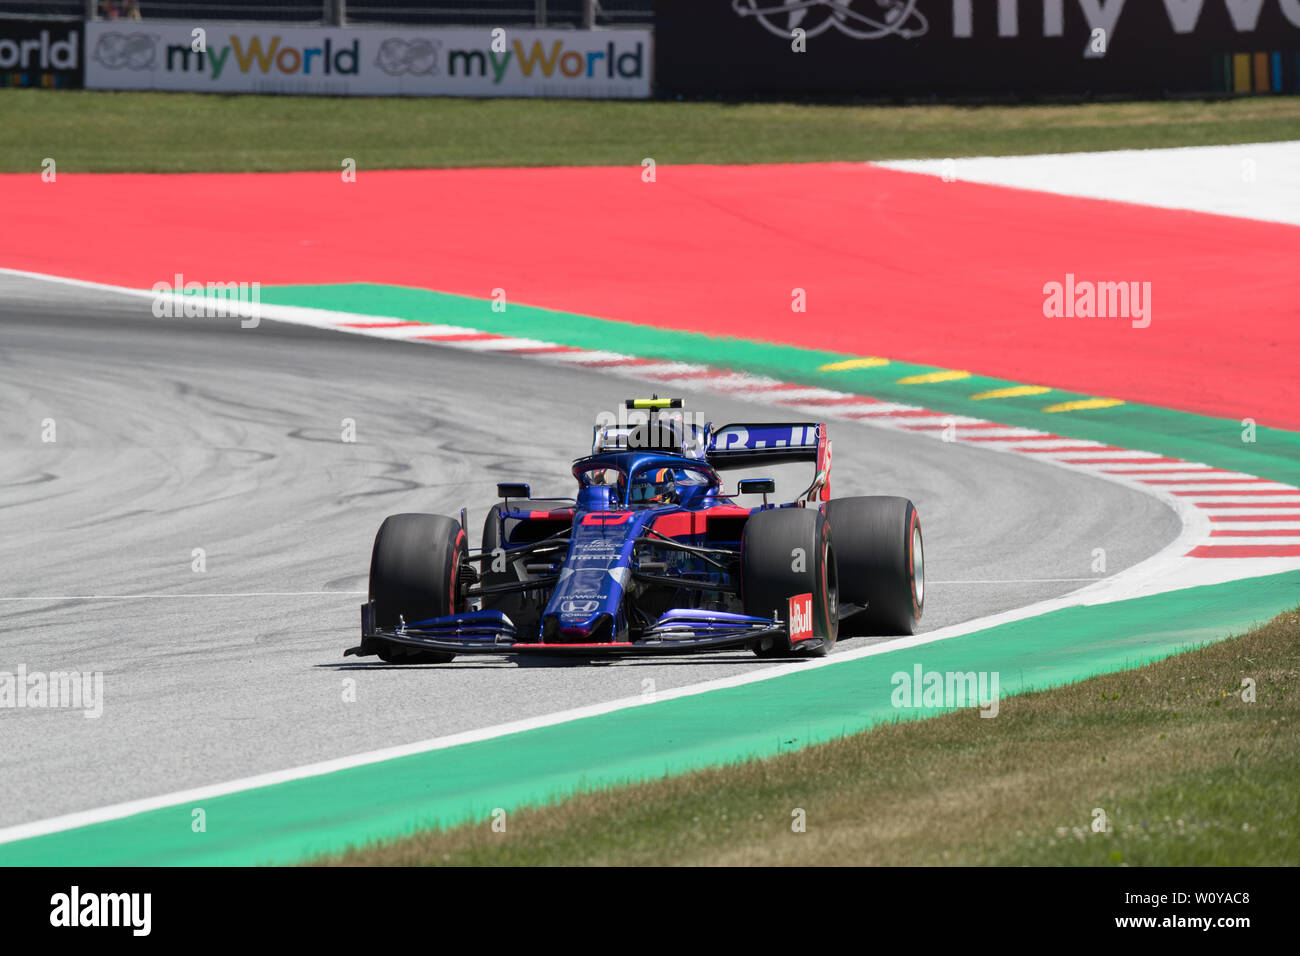 Formula 1 championship round at the A1 Red Bull Ring in Spielberg Austria Stock Photo